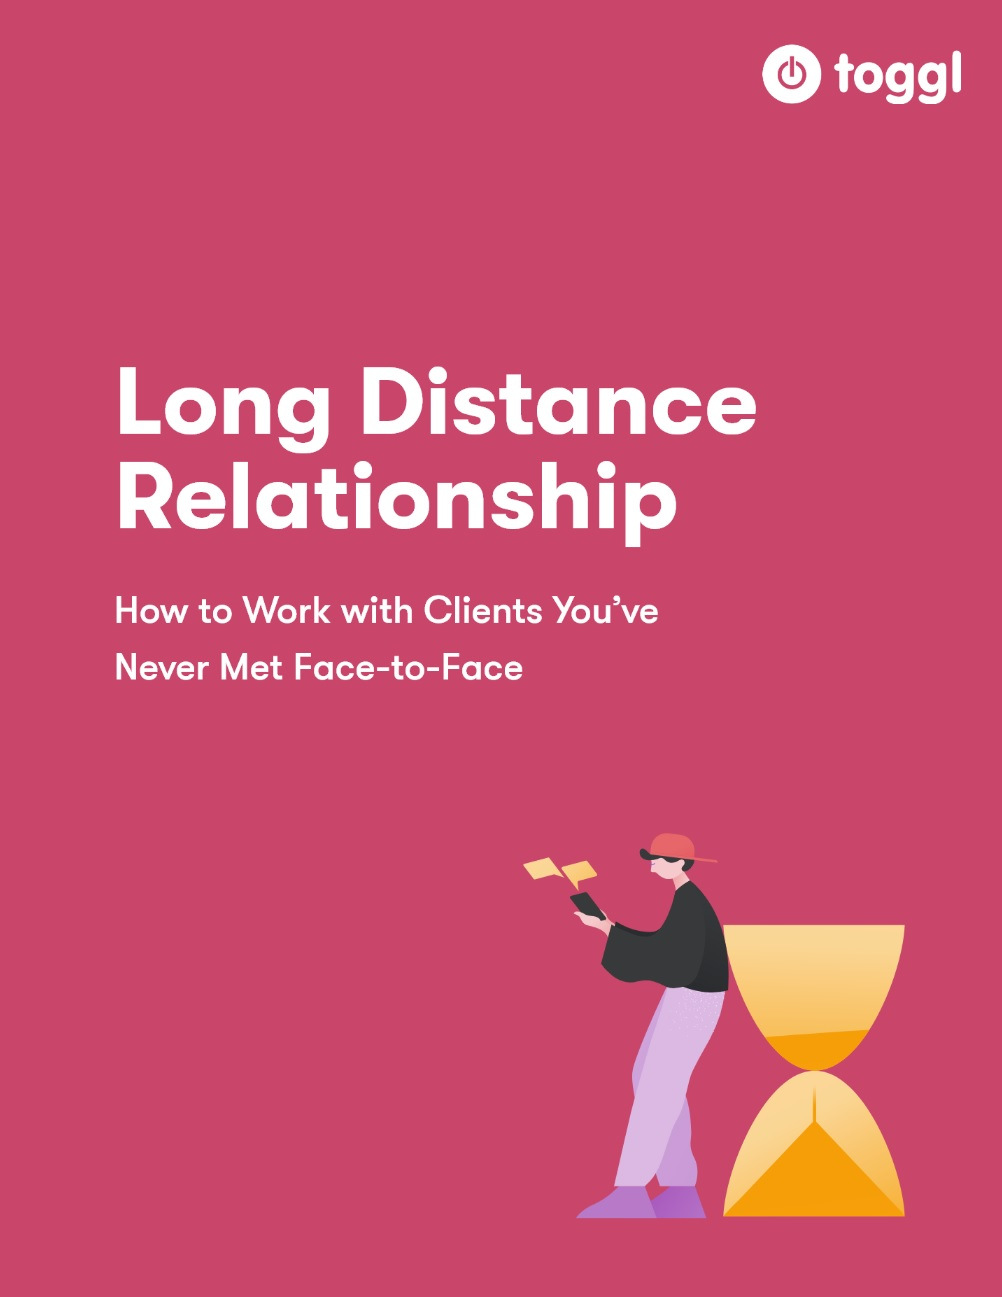 Image of the cover of the ebook - Long Distance Relationship: How to Work with Clients You've Never Met Face-to-Face